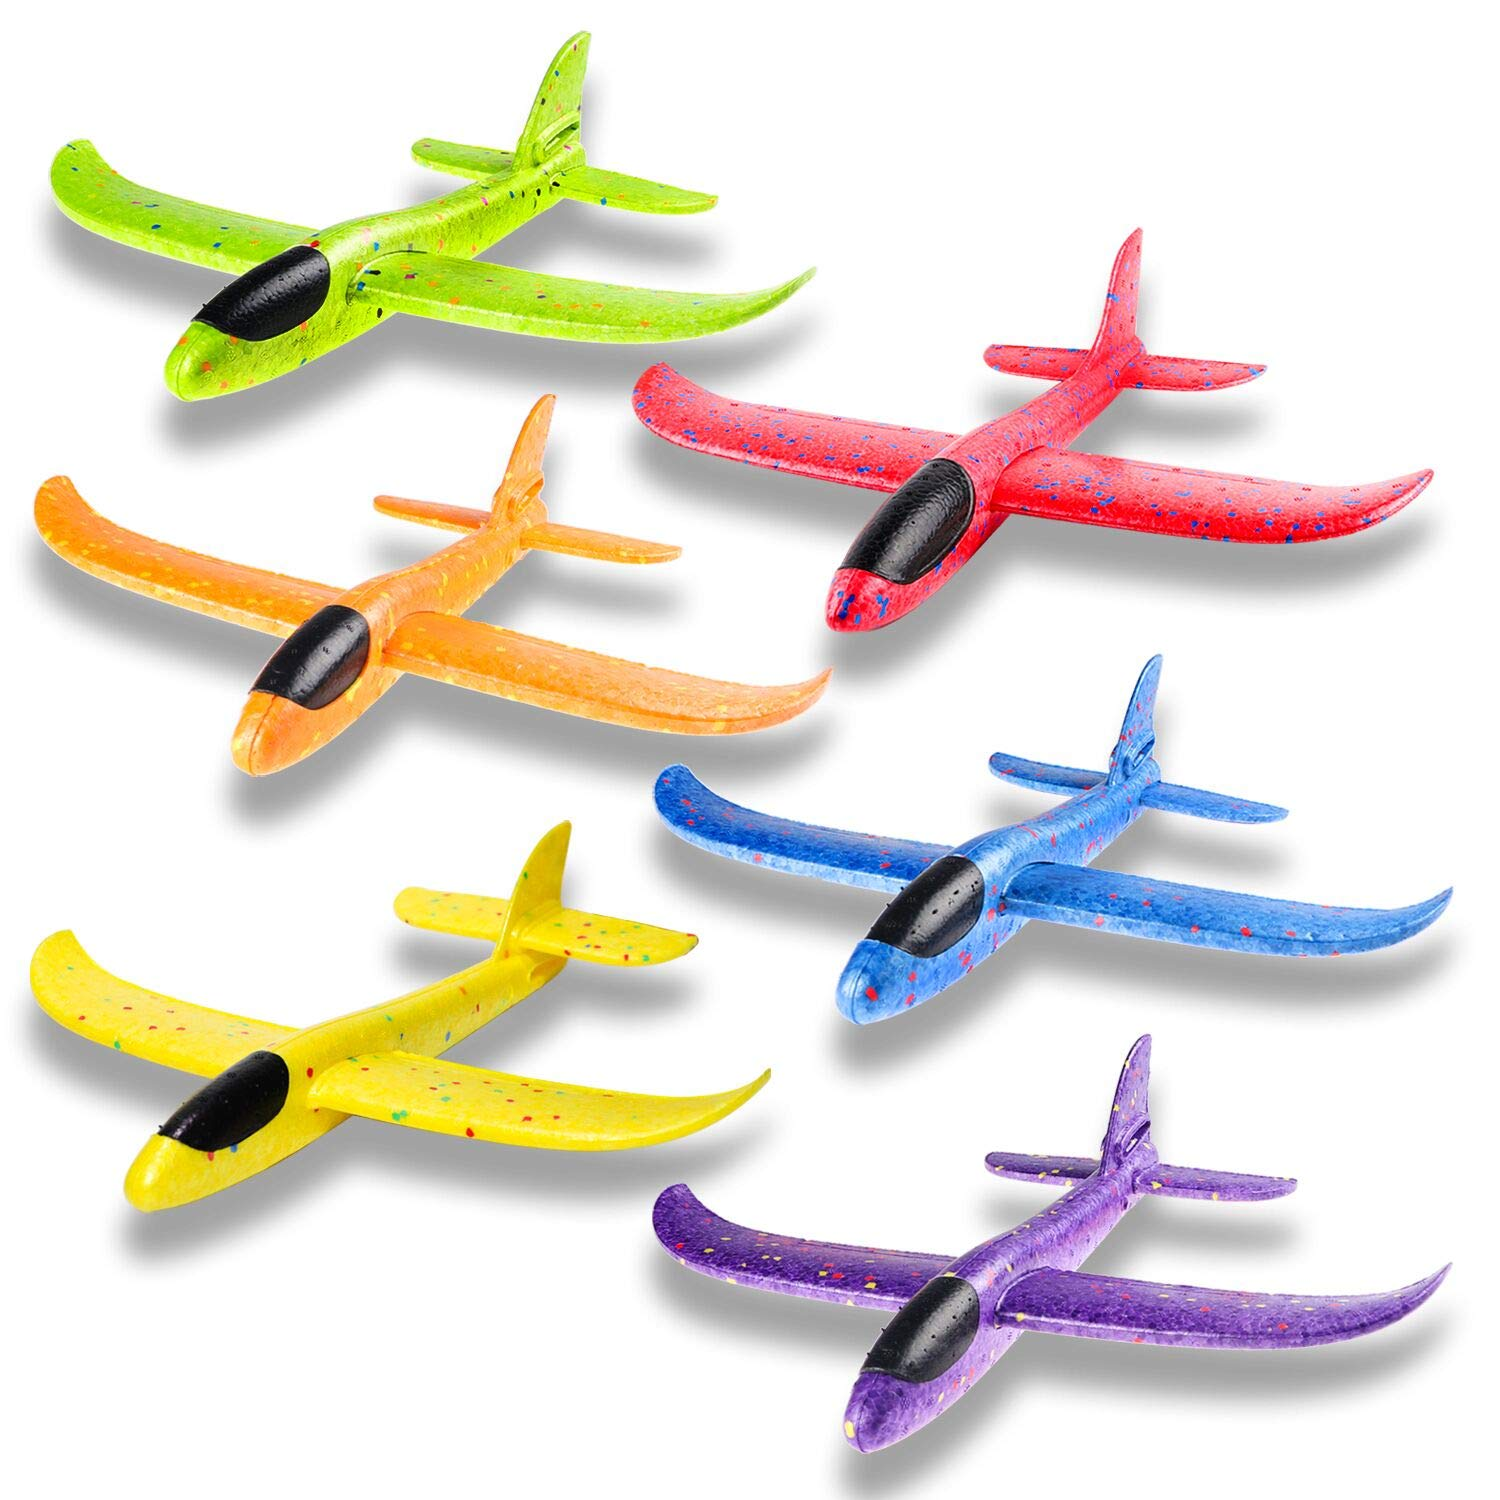 WATINC 6 pcs Airplane 14.5inch Manual Foam Flying Glider Planes Throwing Fun Challenging Games Outdoor Sports Toy Model Air Plane Two Flight Modes Blue Orange Aircraft for Boys Girls by WATINC (Image #1)